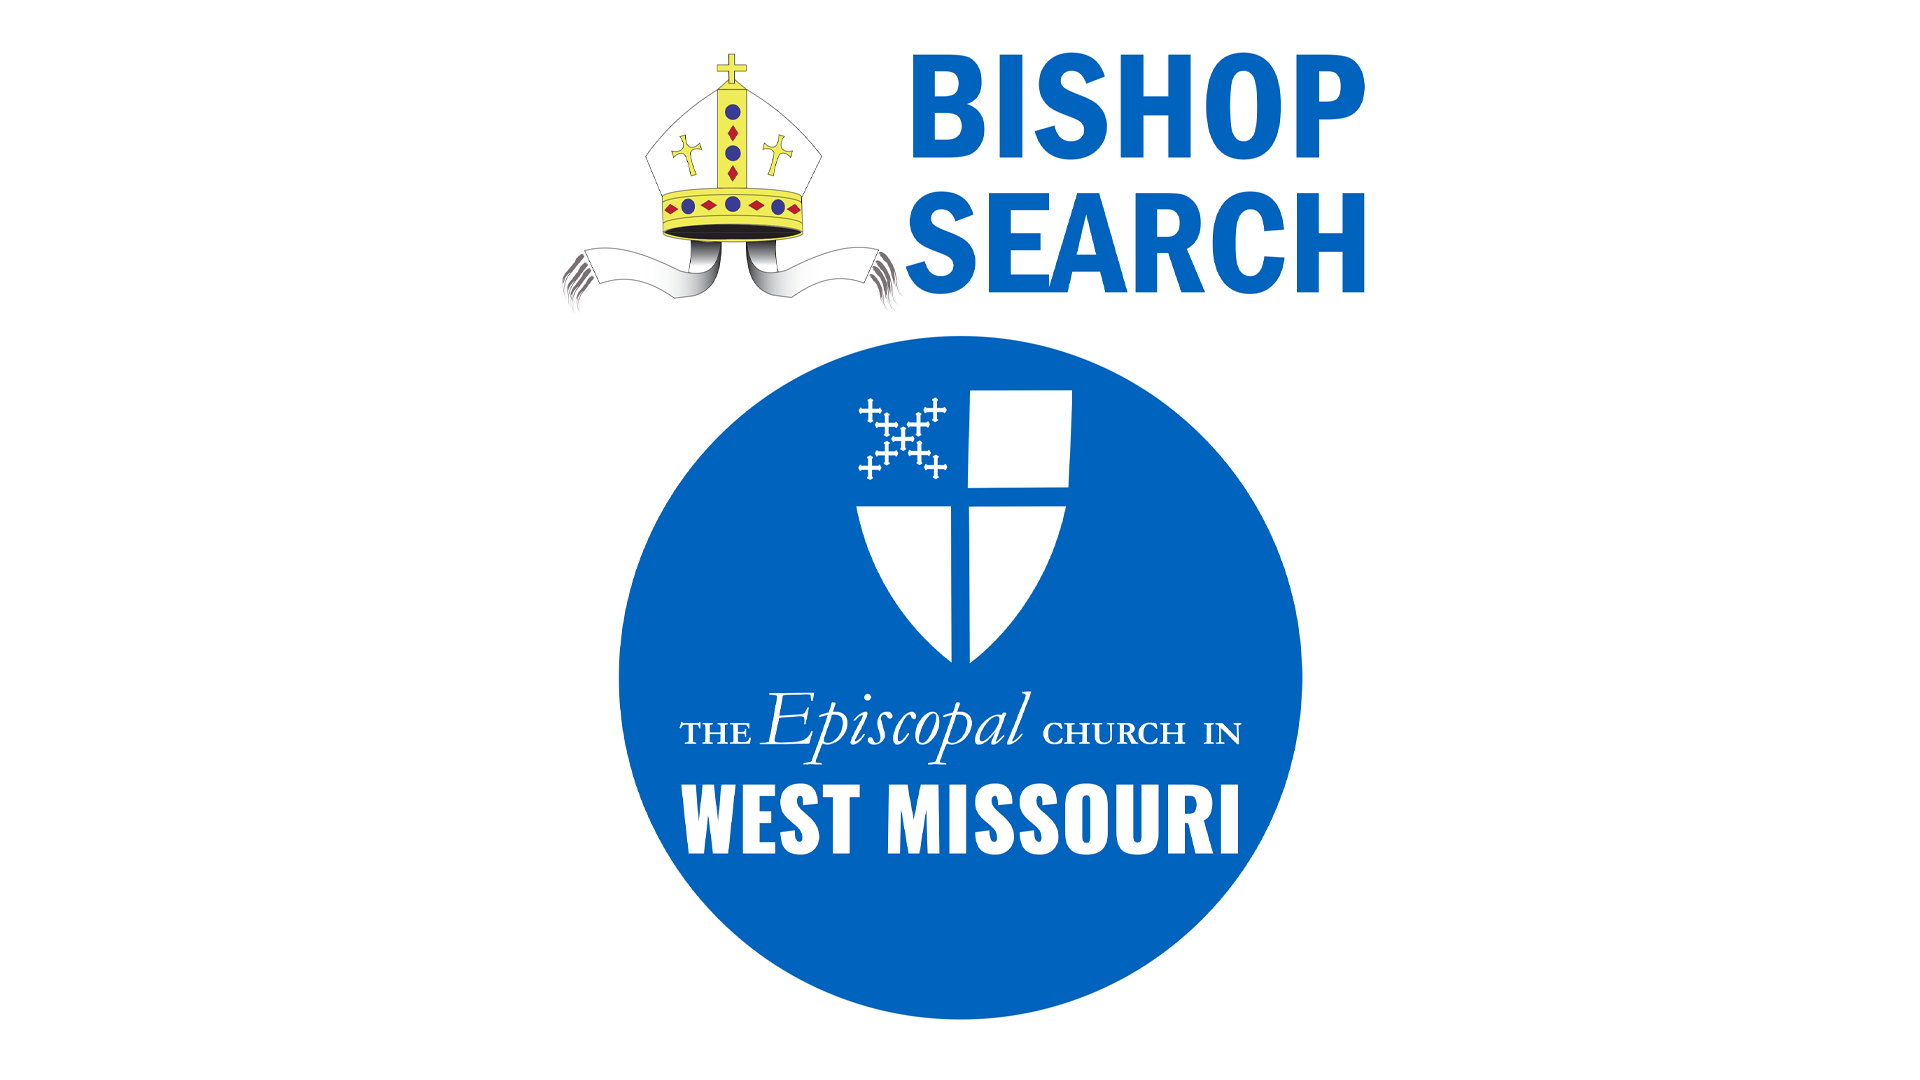 In search of a new bishop